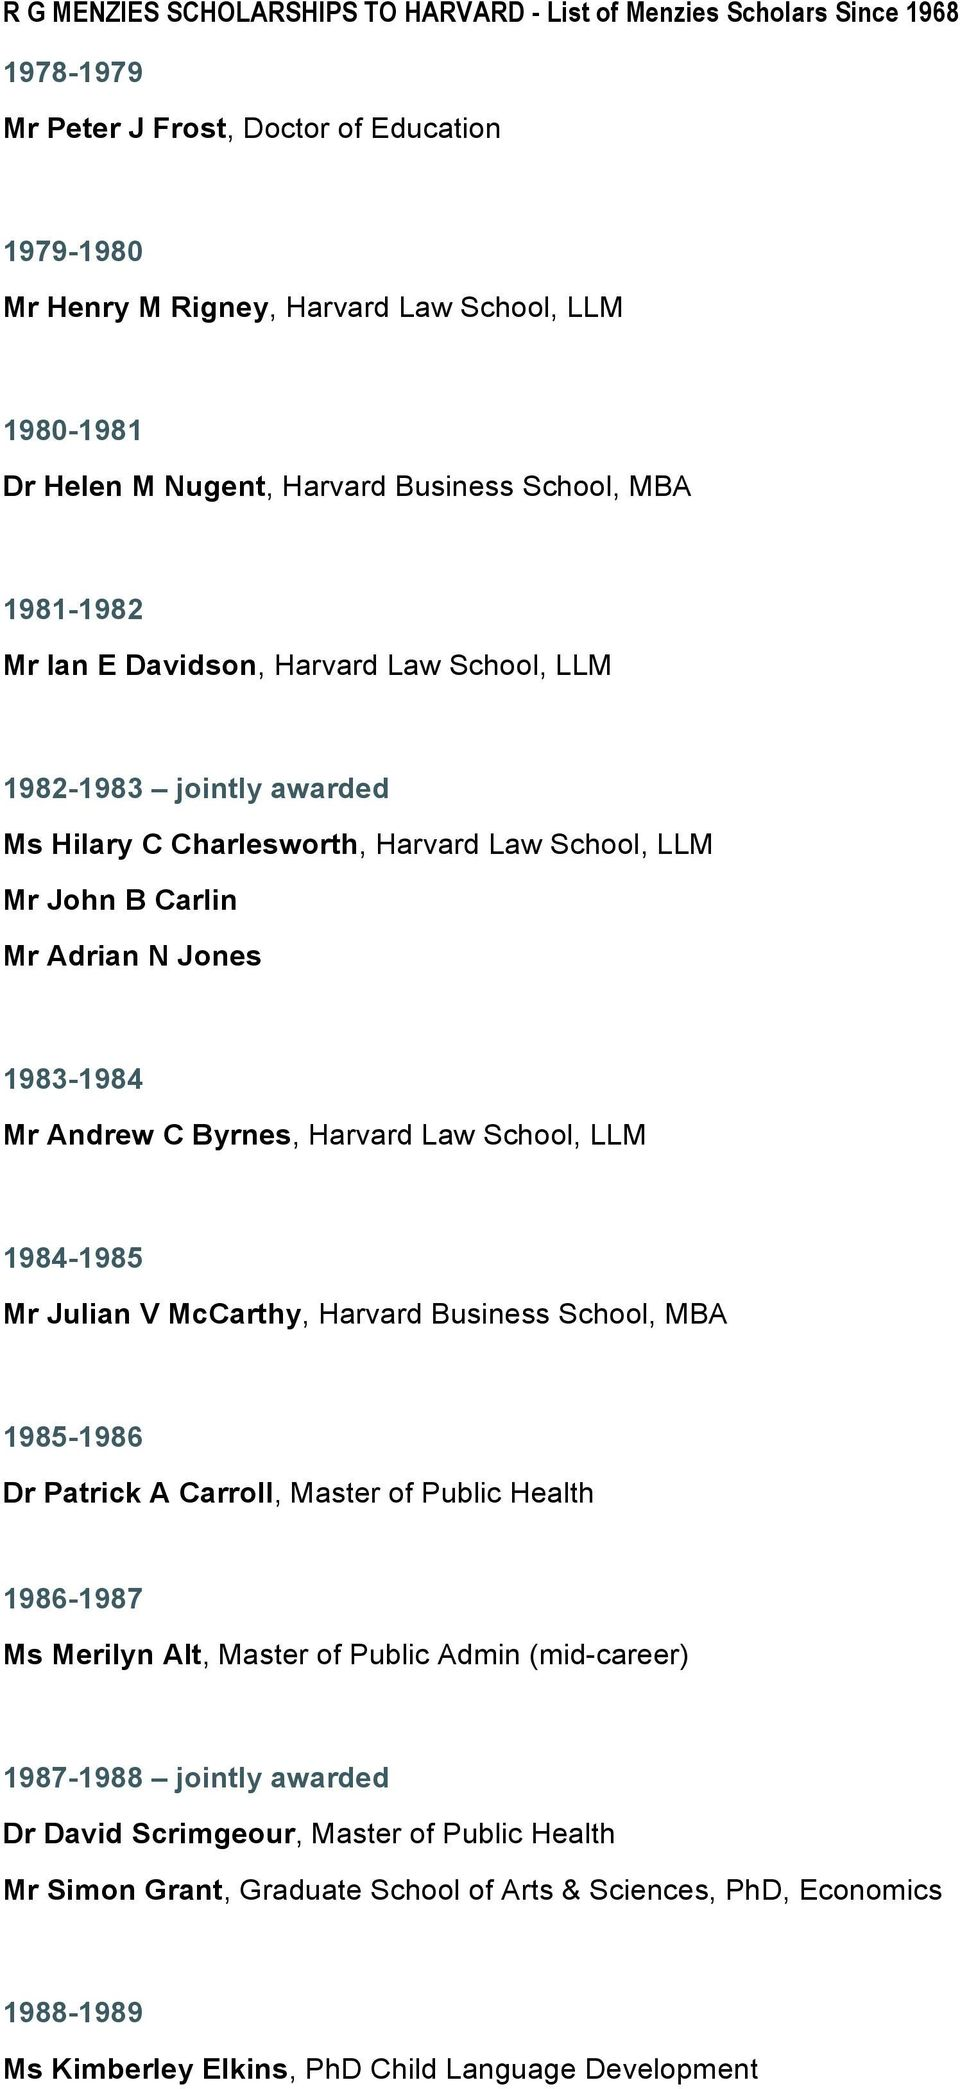 1984-1985 Mr Julian V McCarthy, Harvard Business School, MBA 1985-1986 Dr Patrick A Carroll, Master of Public Health 1986-1987 Ms Merilyn Alt, Master of Public Admin (mid-career) 1987-1988